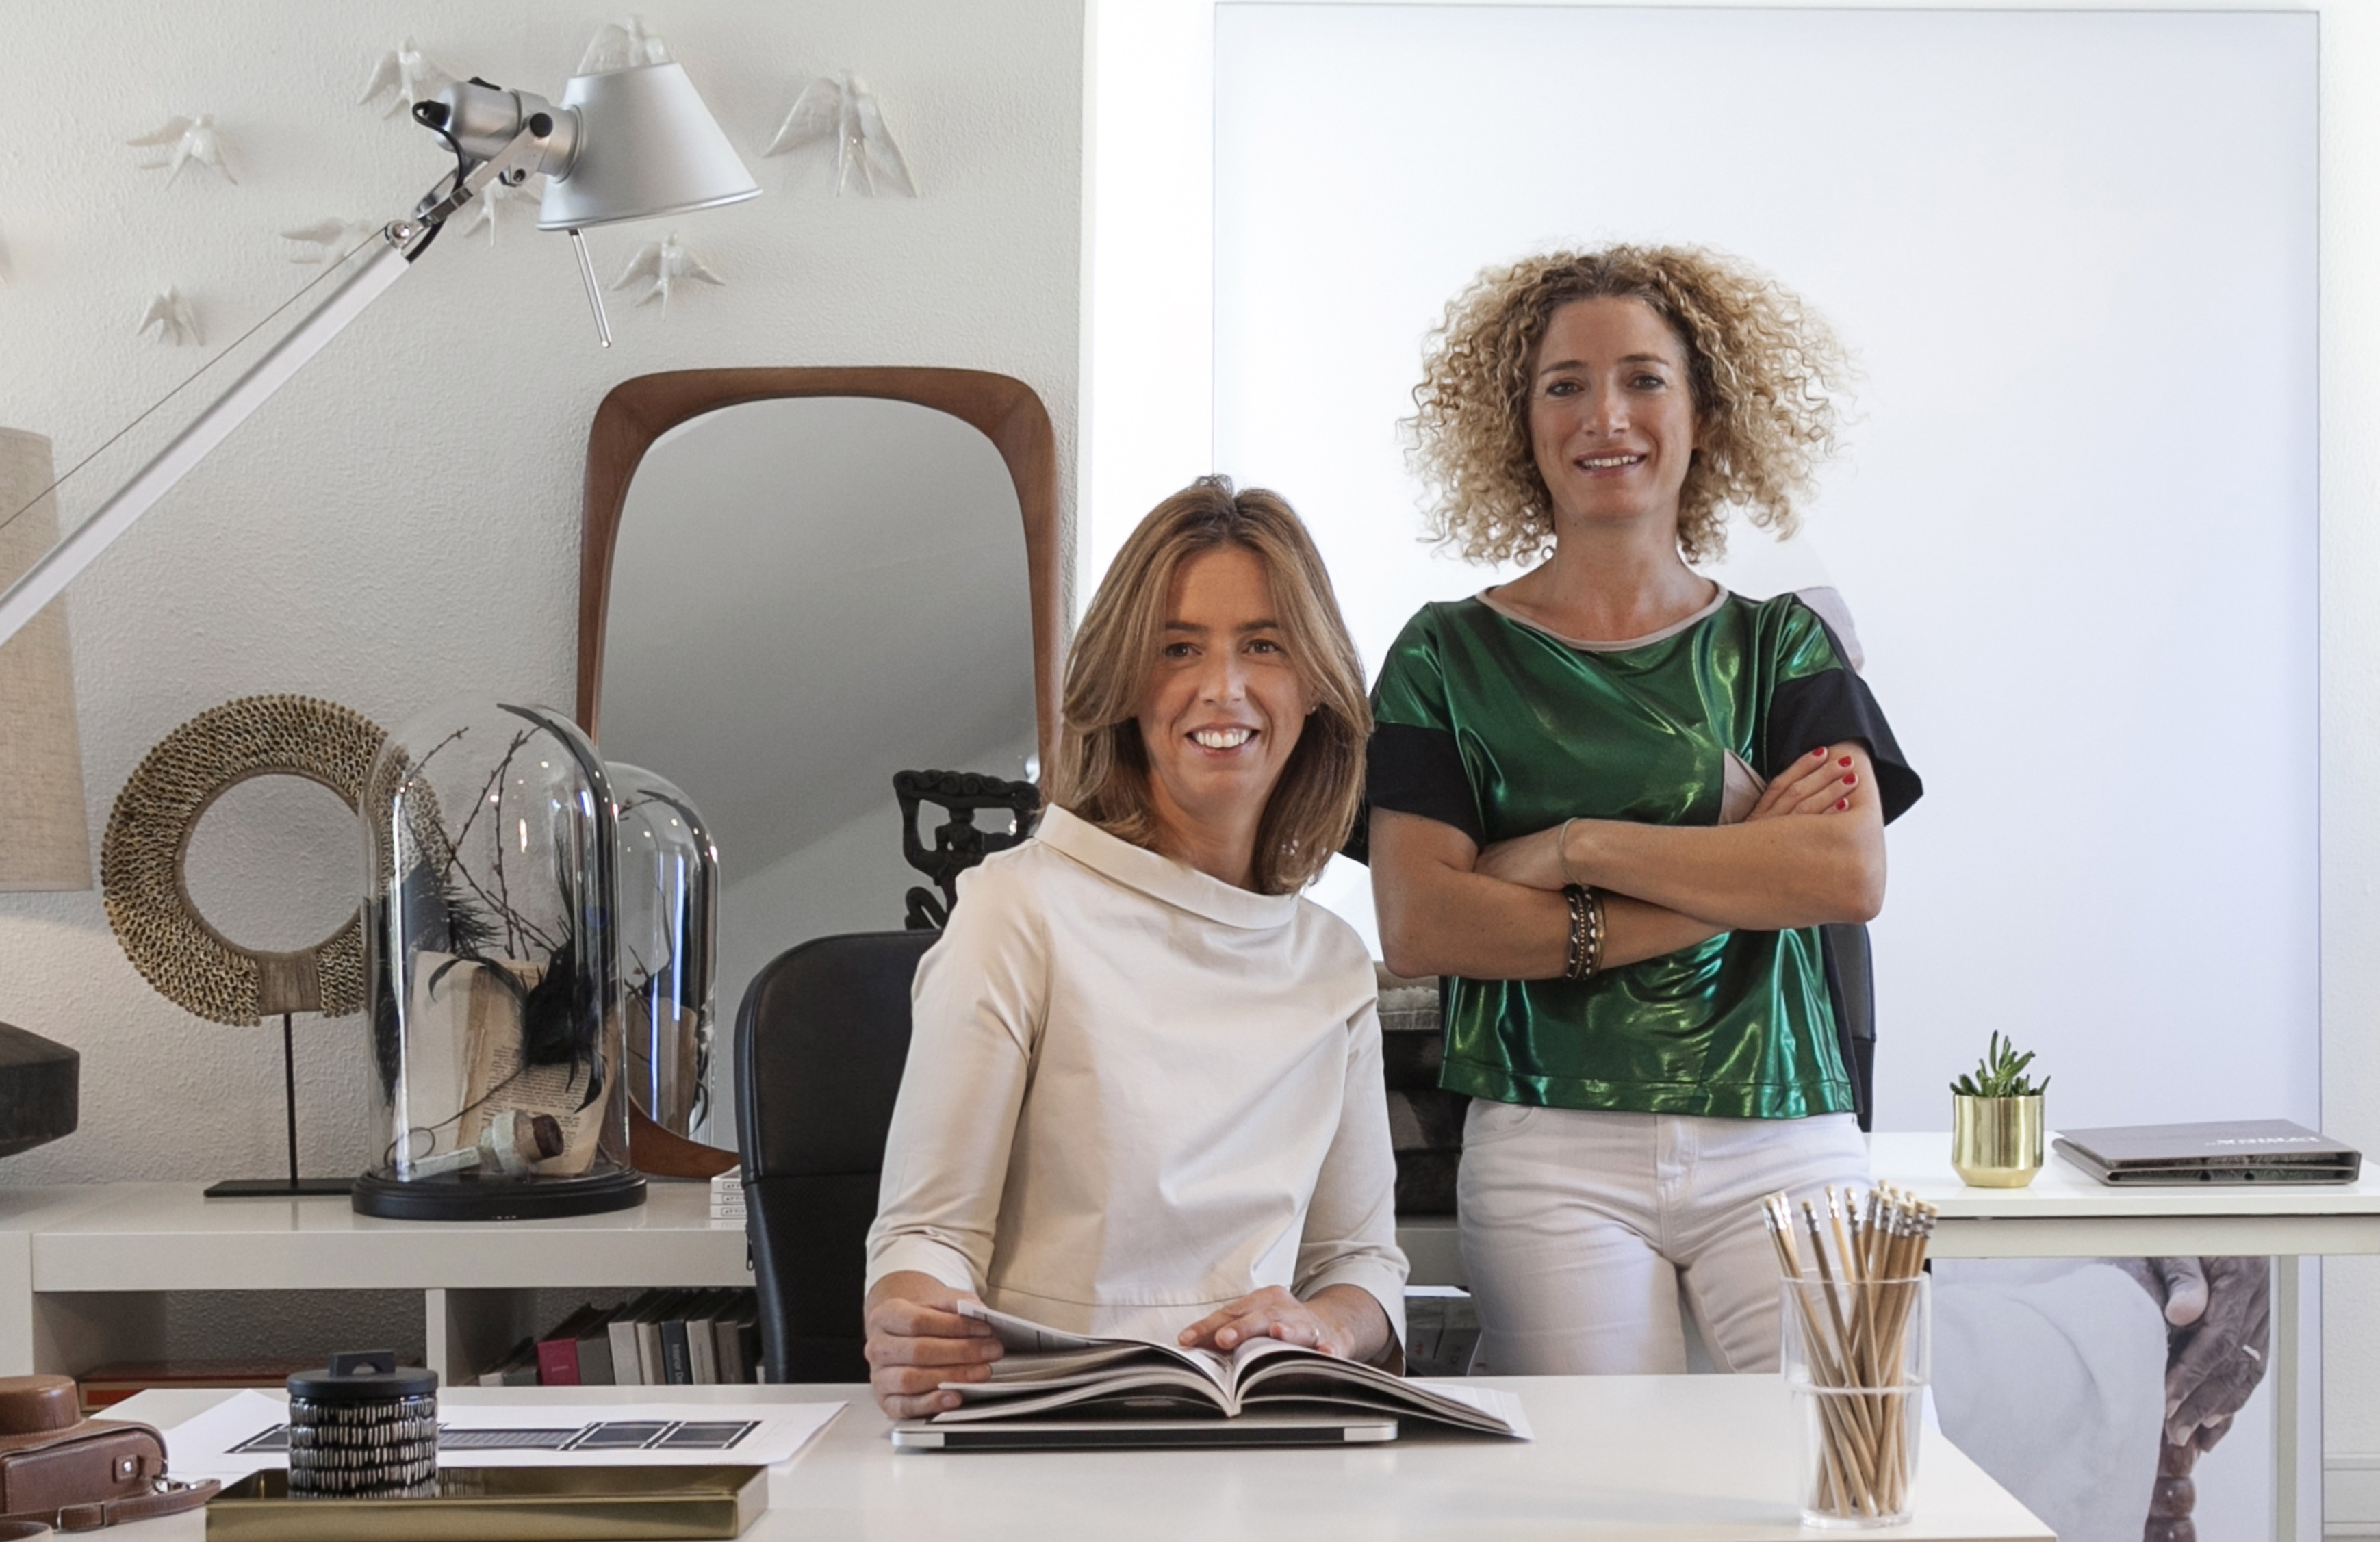 Margarida Diniz e Catarina Diniz, cofundadoras da Home Staging Factory / Home Staging Factory